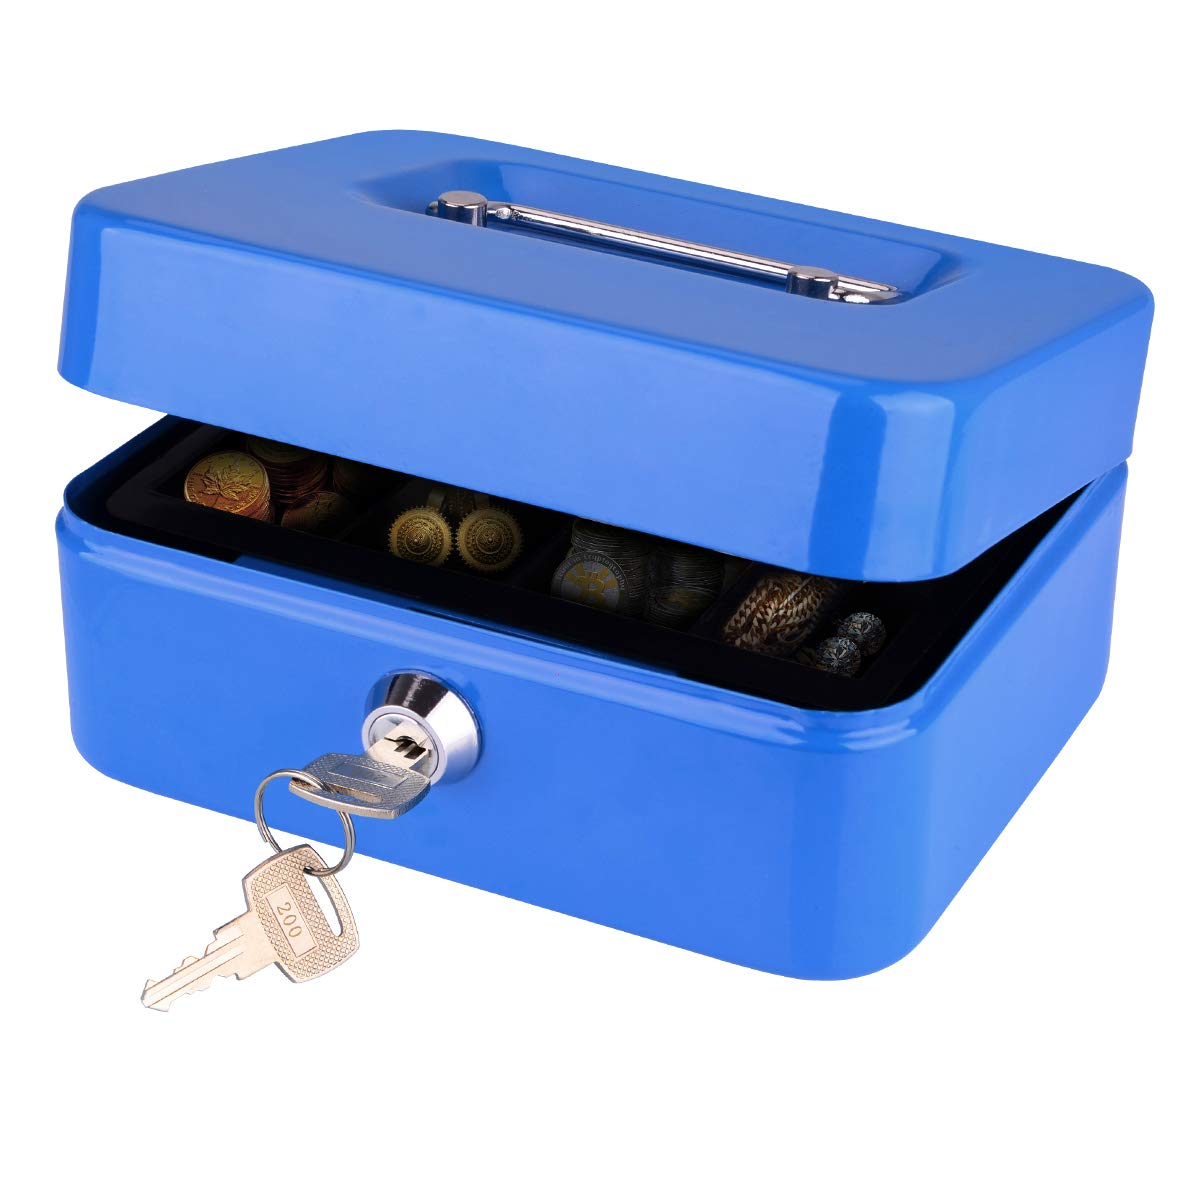 LeHatori Money Safe Key Lock Box with Money Tray Portable Metal Cash Registers Security Storage Bill Coin Container with Carry Handle 8 Inch Cash Box